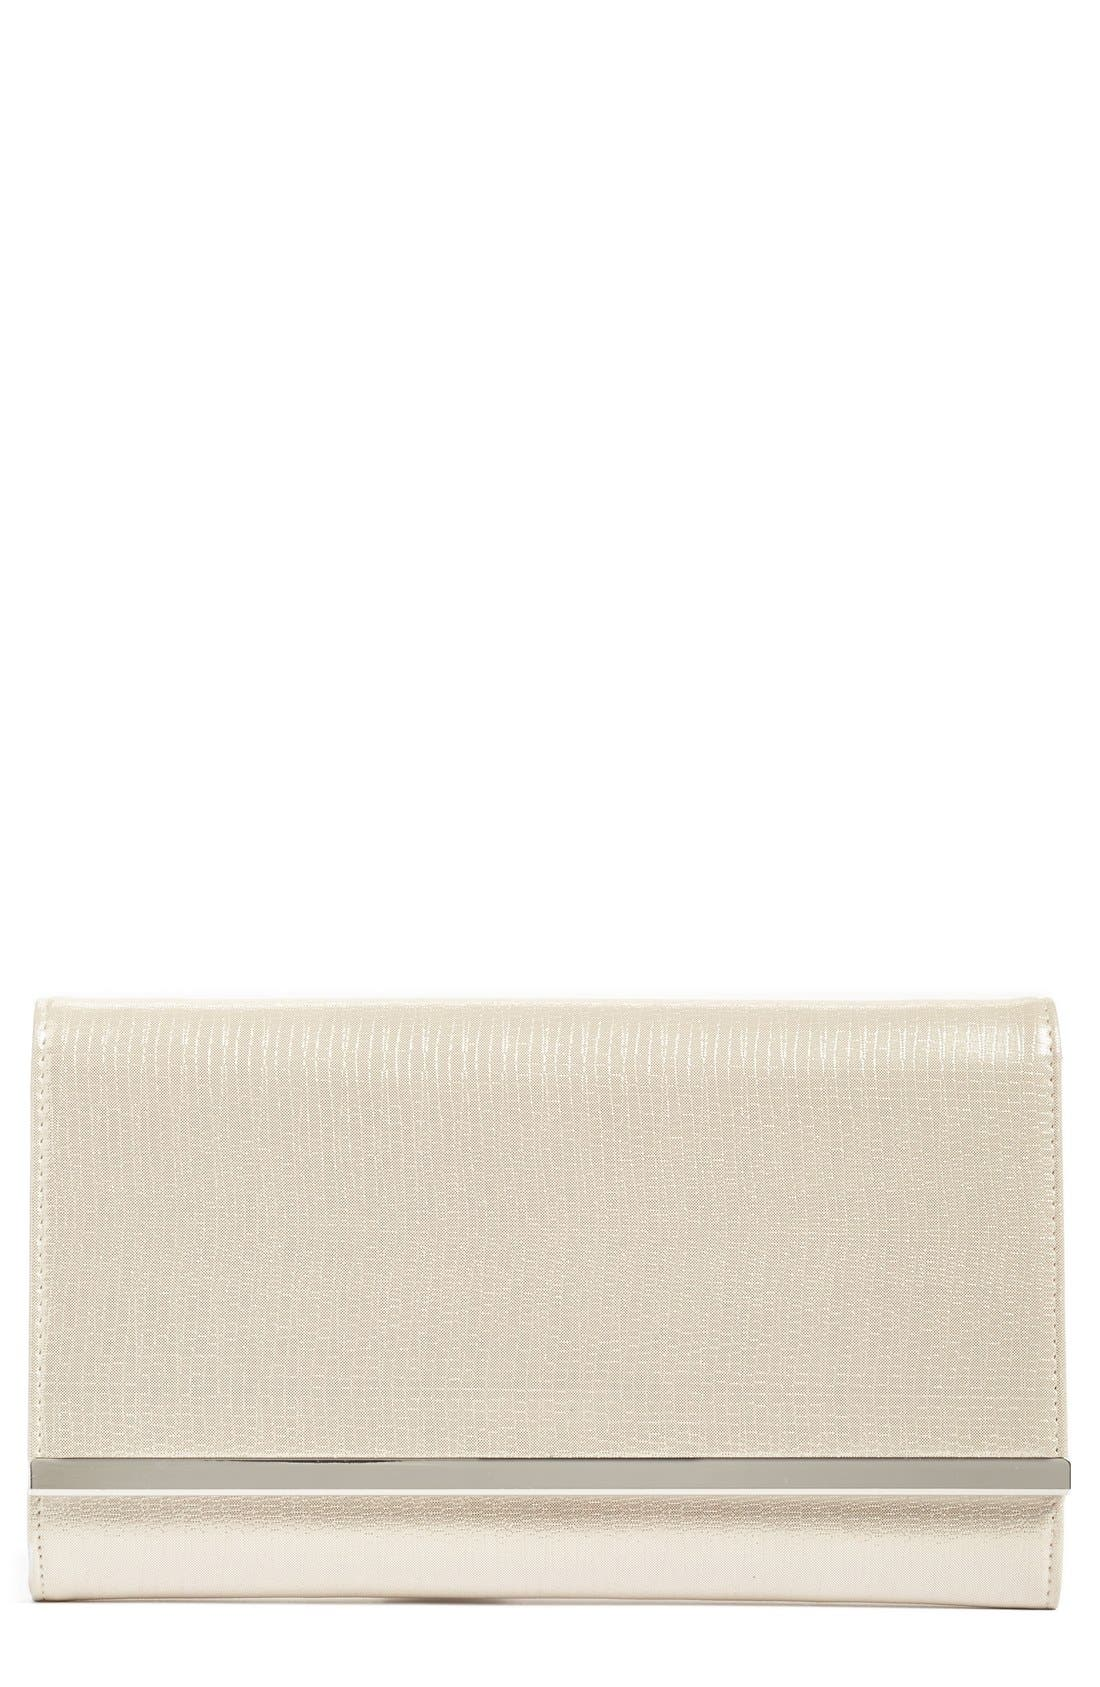 Alternate Image 1 Selected - Glint 'Sparkle Bar' Clutch